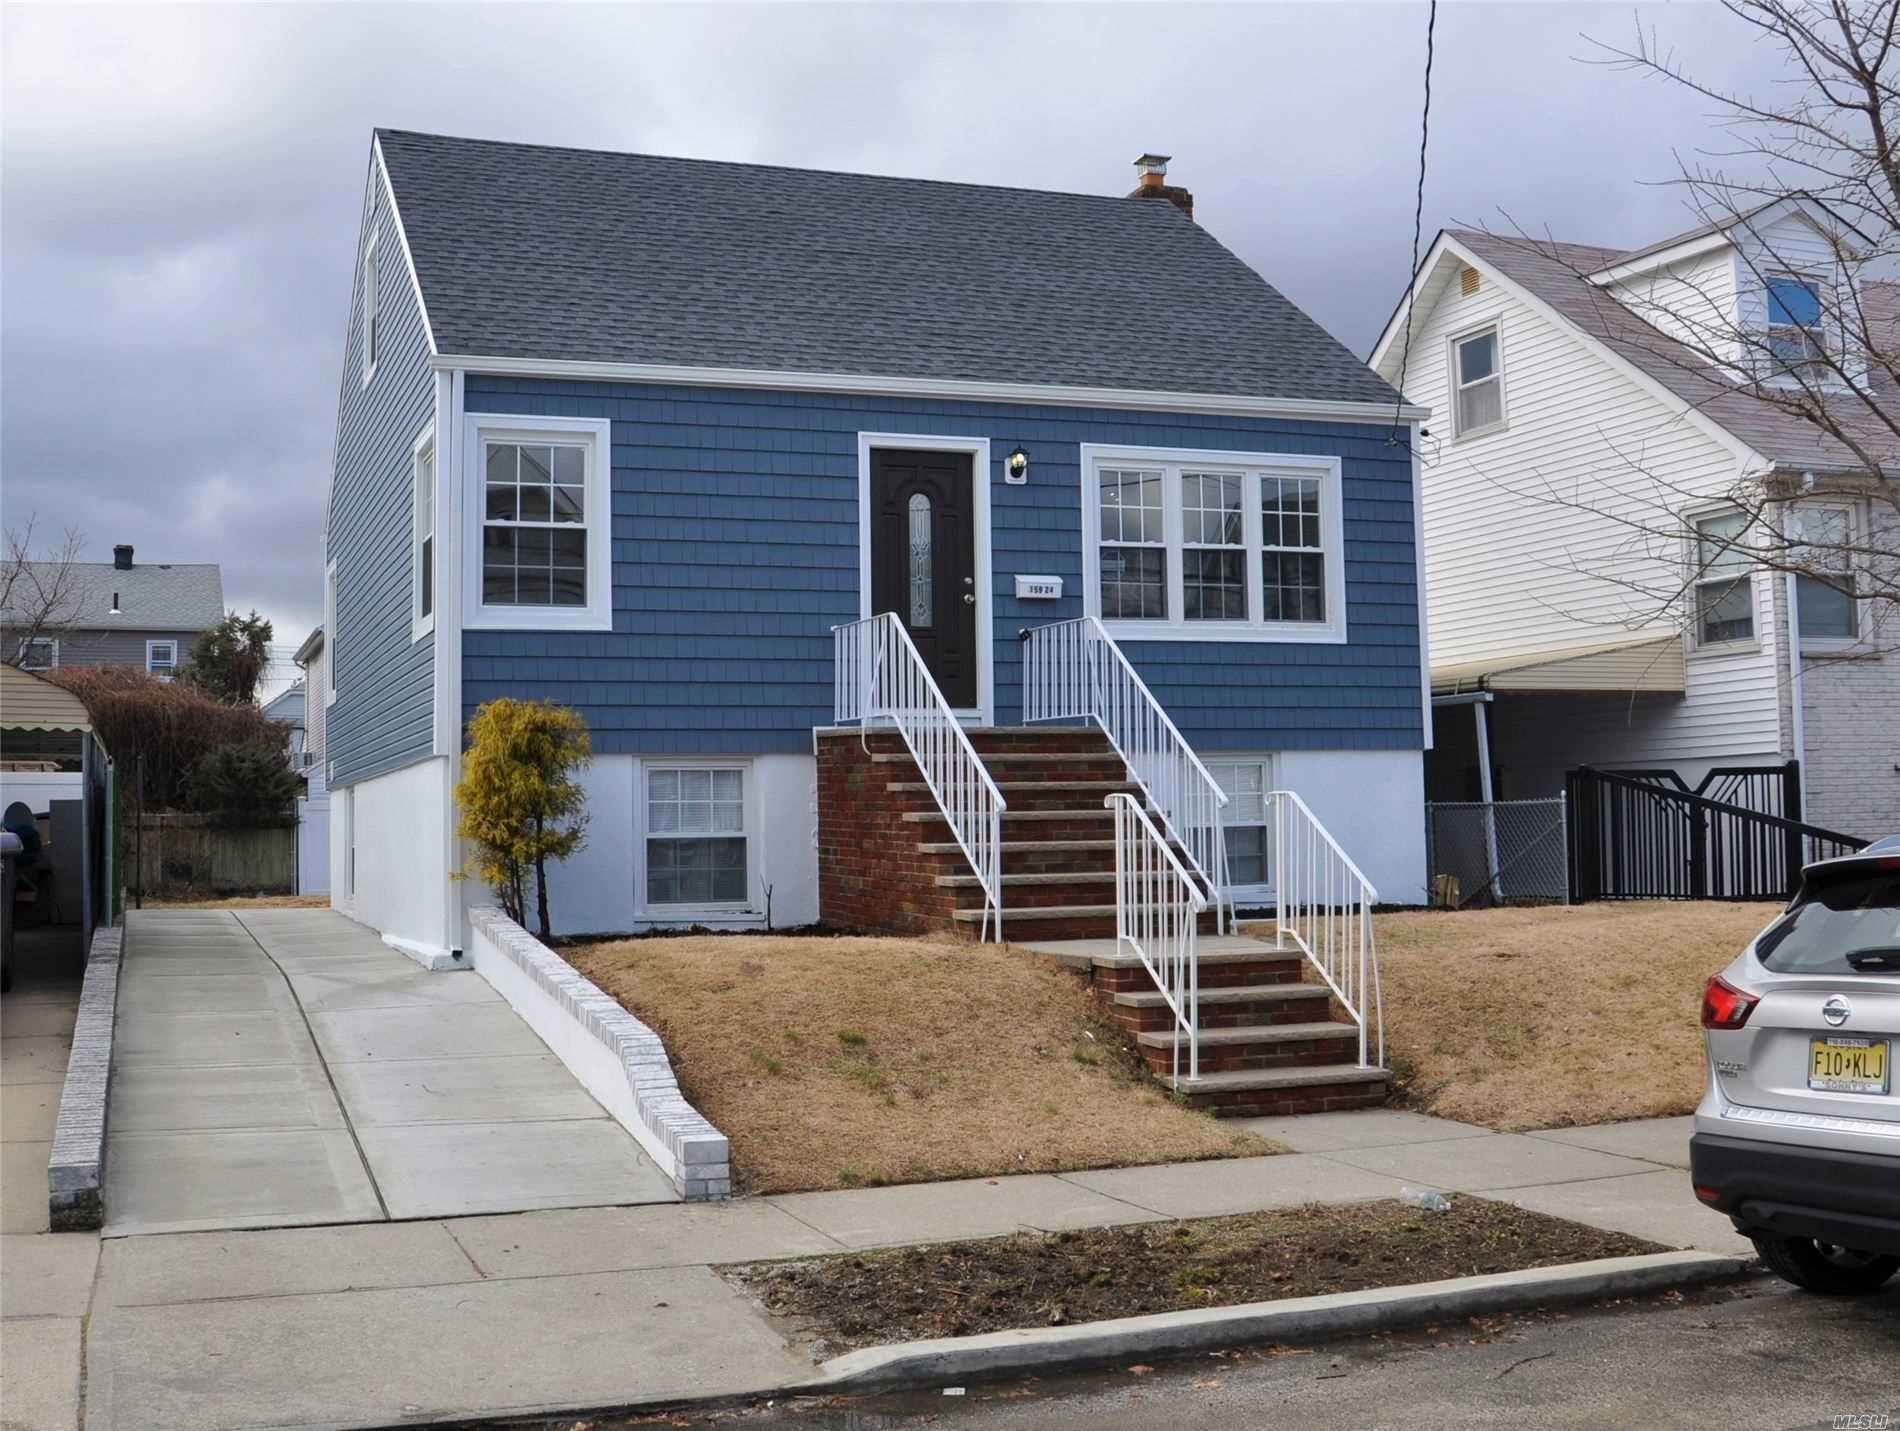 159-24 97th Street, Howard Beach, NY 11414 - MLS#: 3198272